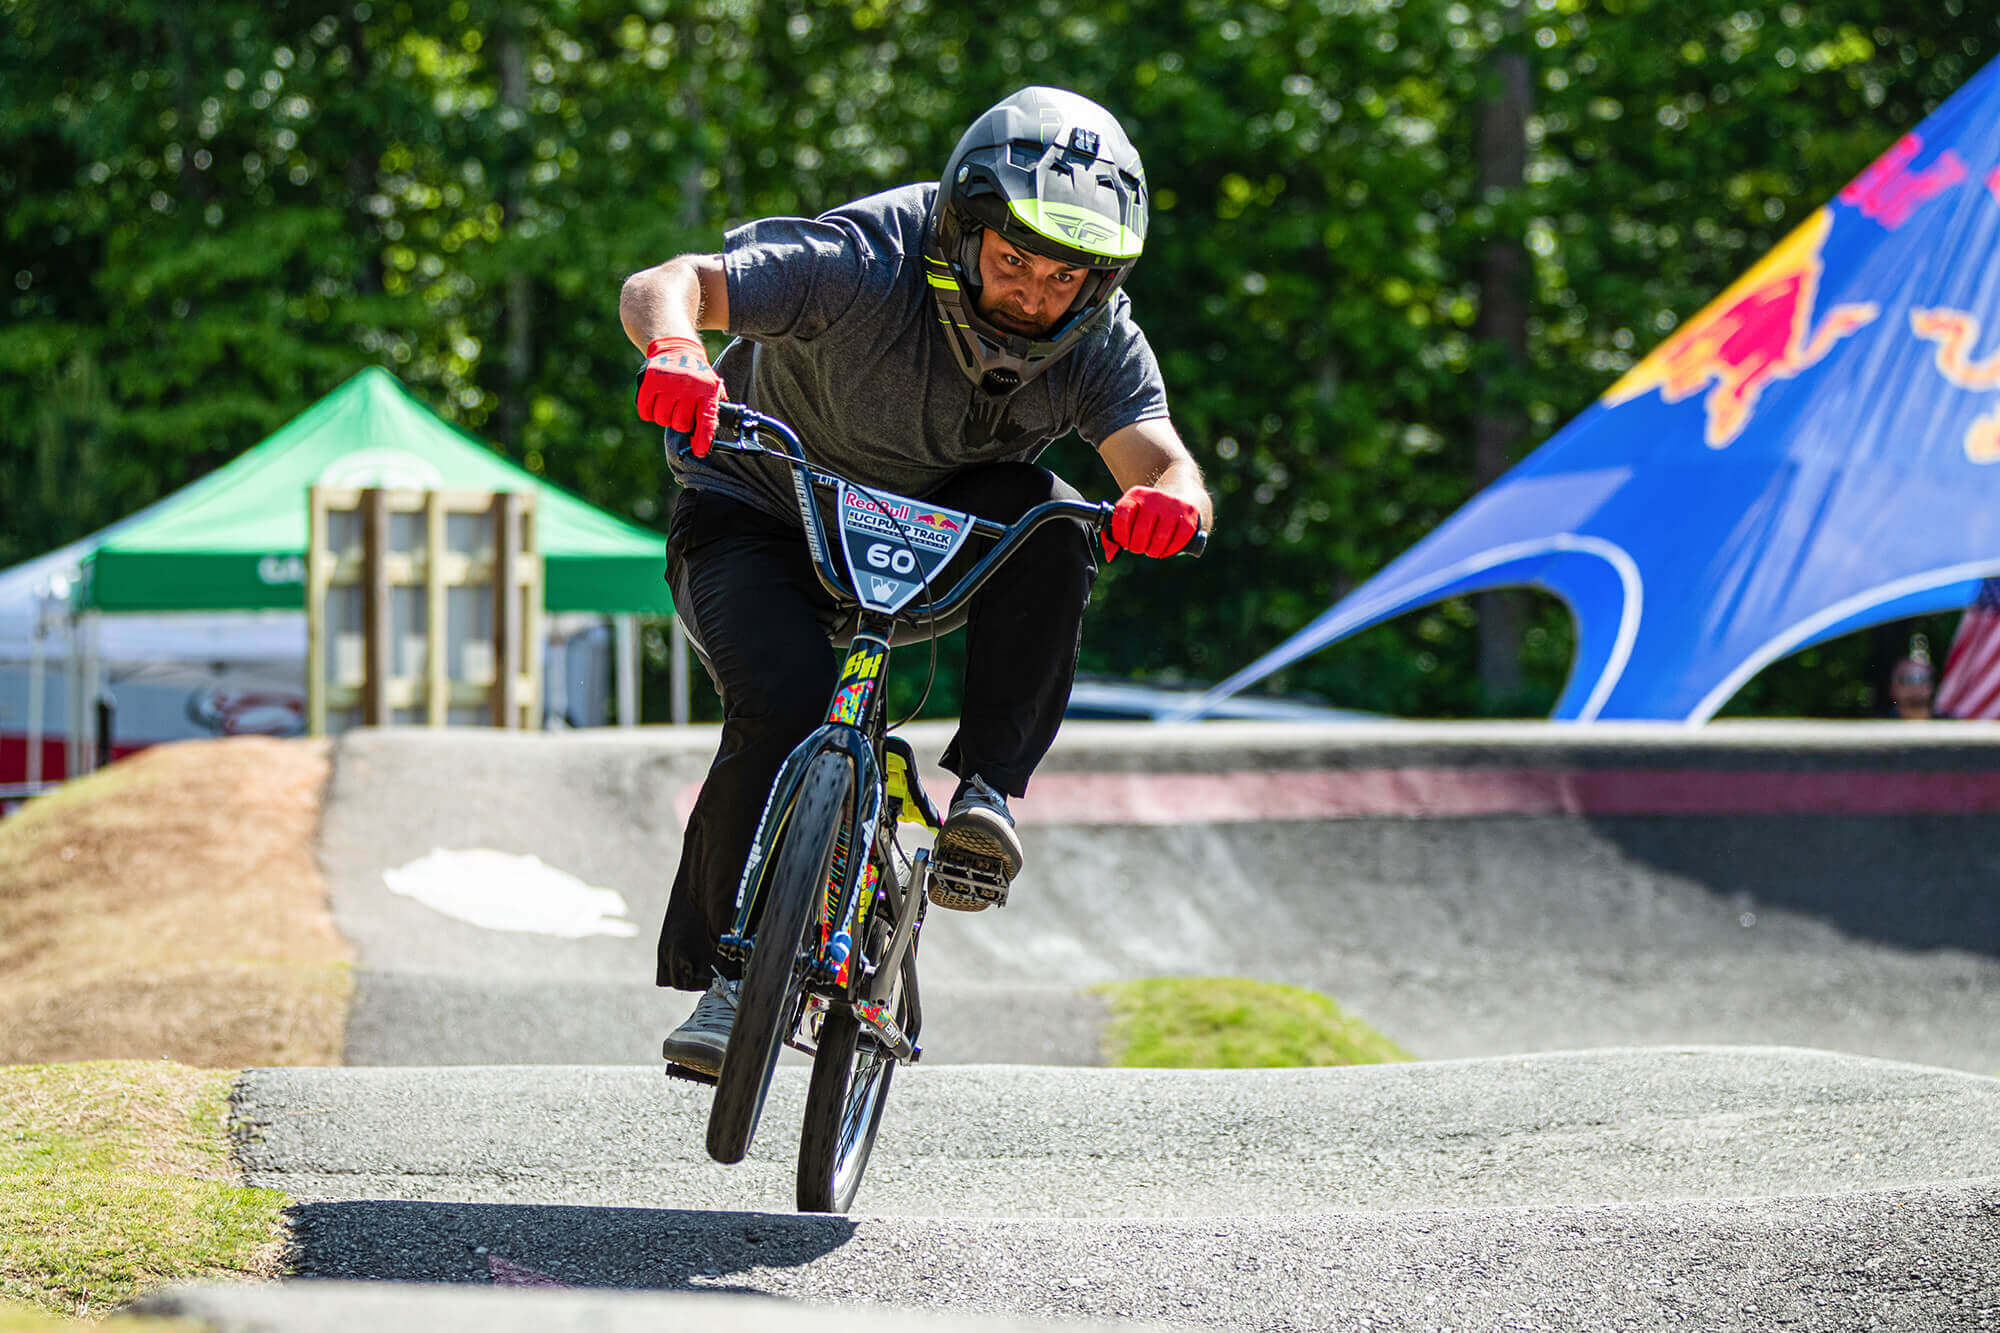 Red Bull Pump Track Qualifier Gaston County May 2021 - Brian Hall - ATL-0038